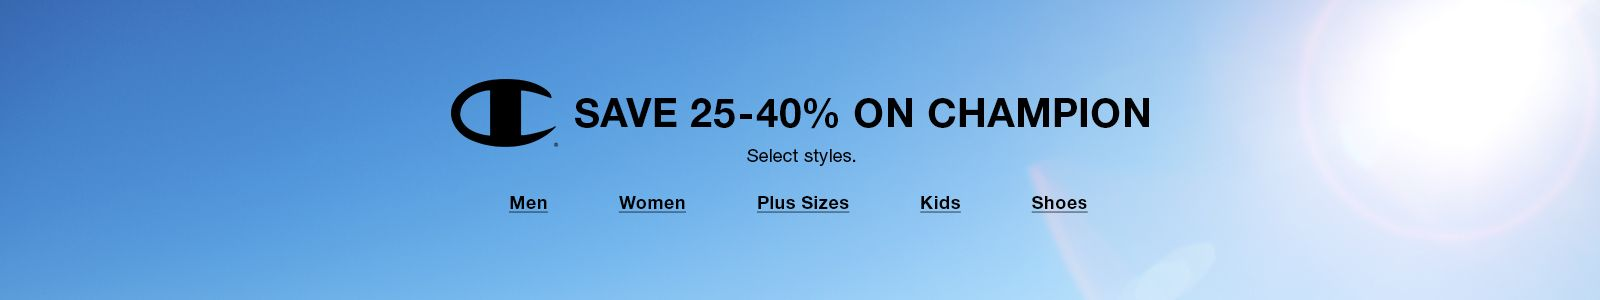 Save 25-40 Percent On Champion, Select styles, Men, Women, Plus Sizes, Kids, Shoes